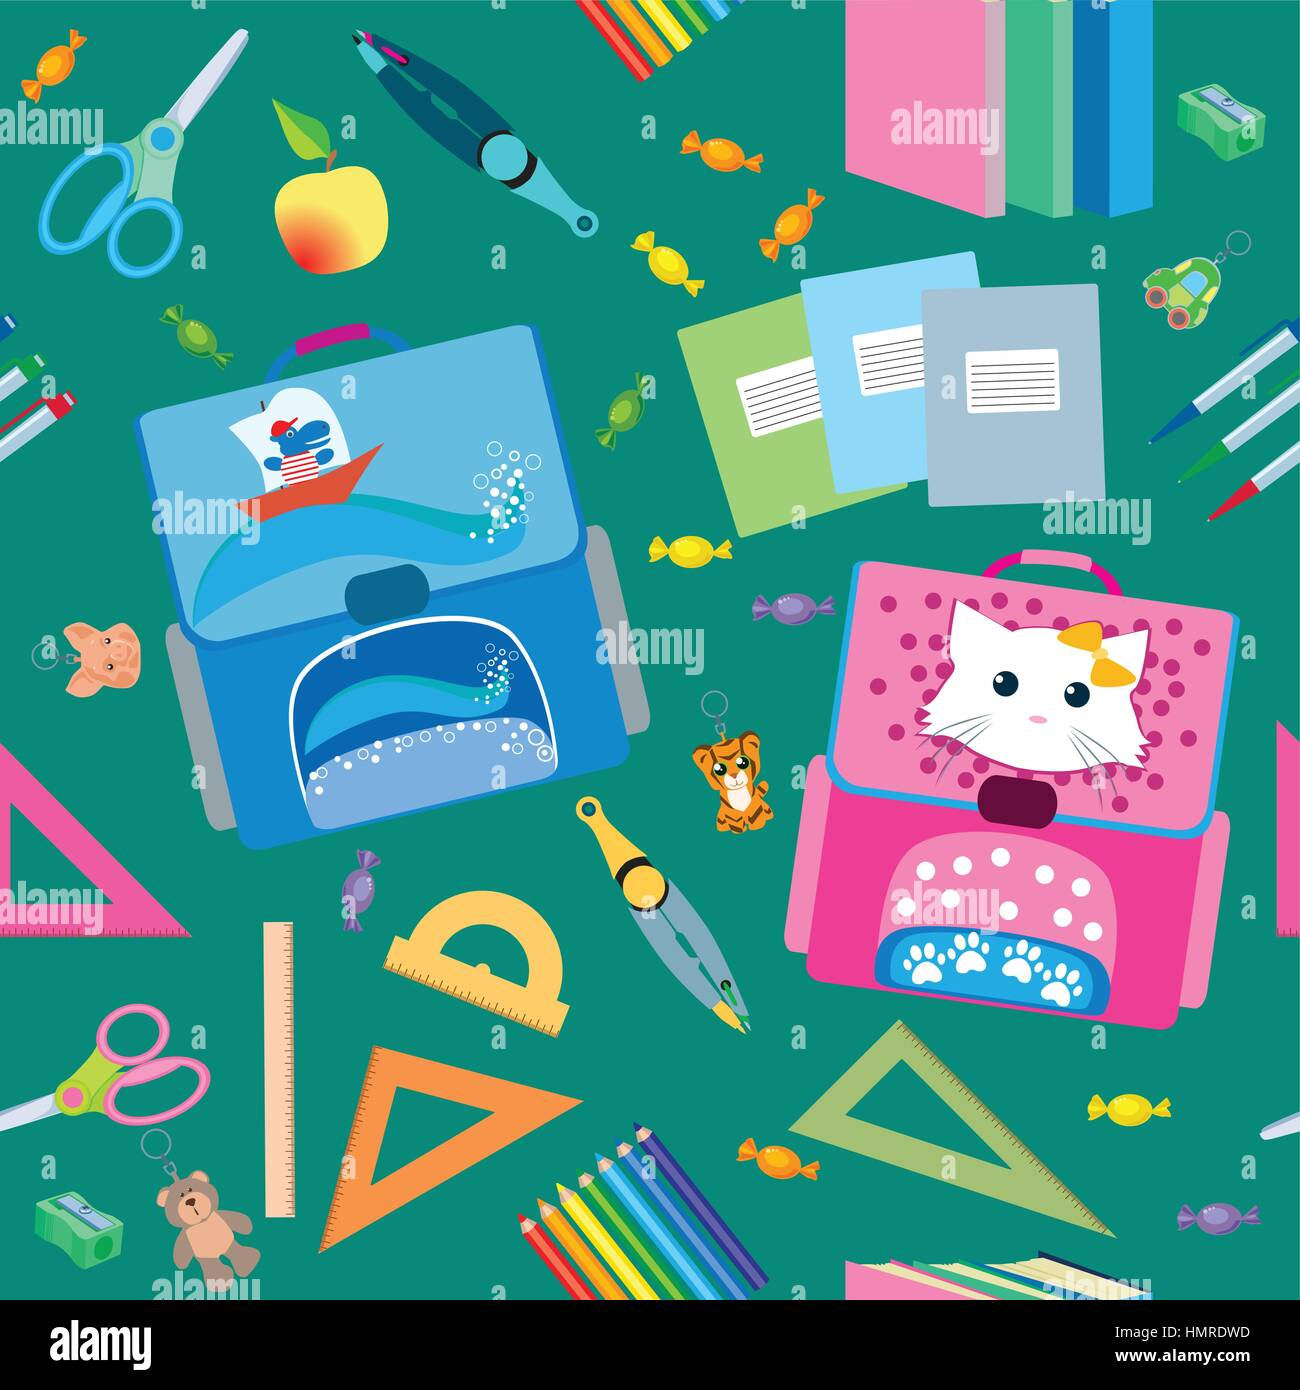 Back to School icons education seamless pattern - Stock Vector